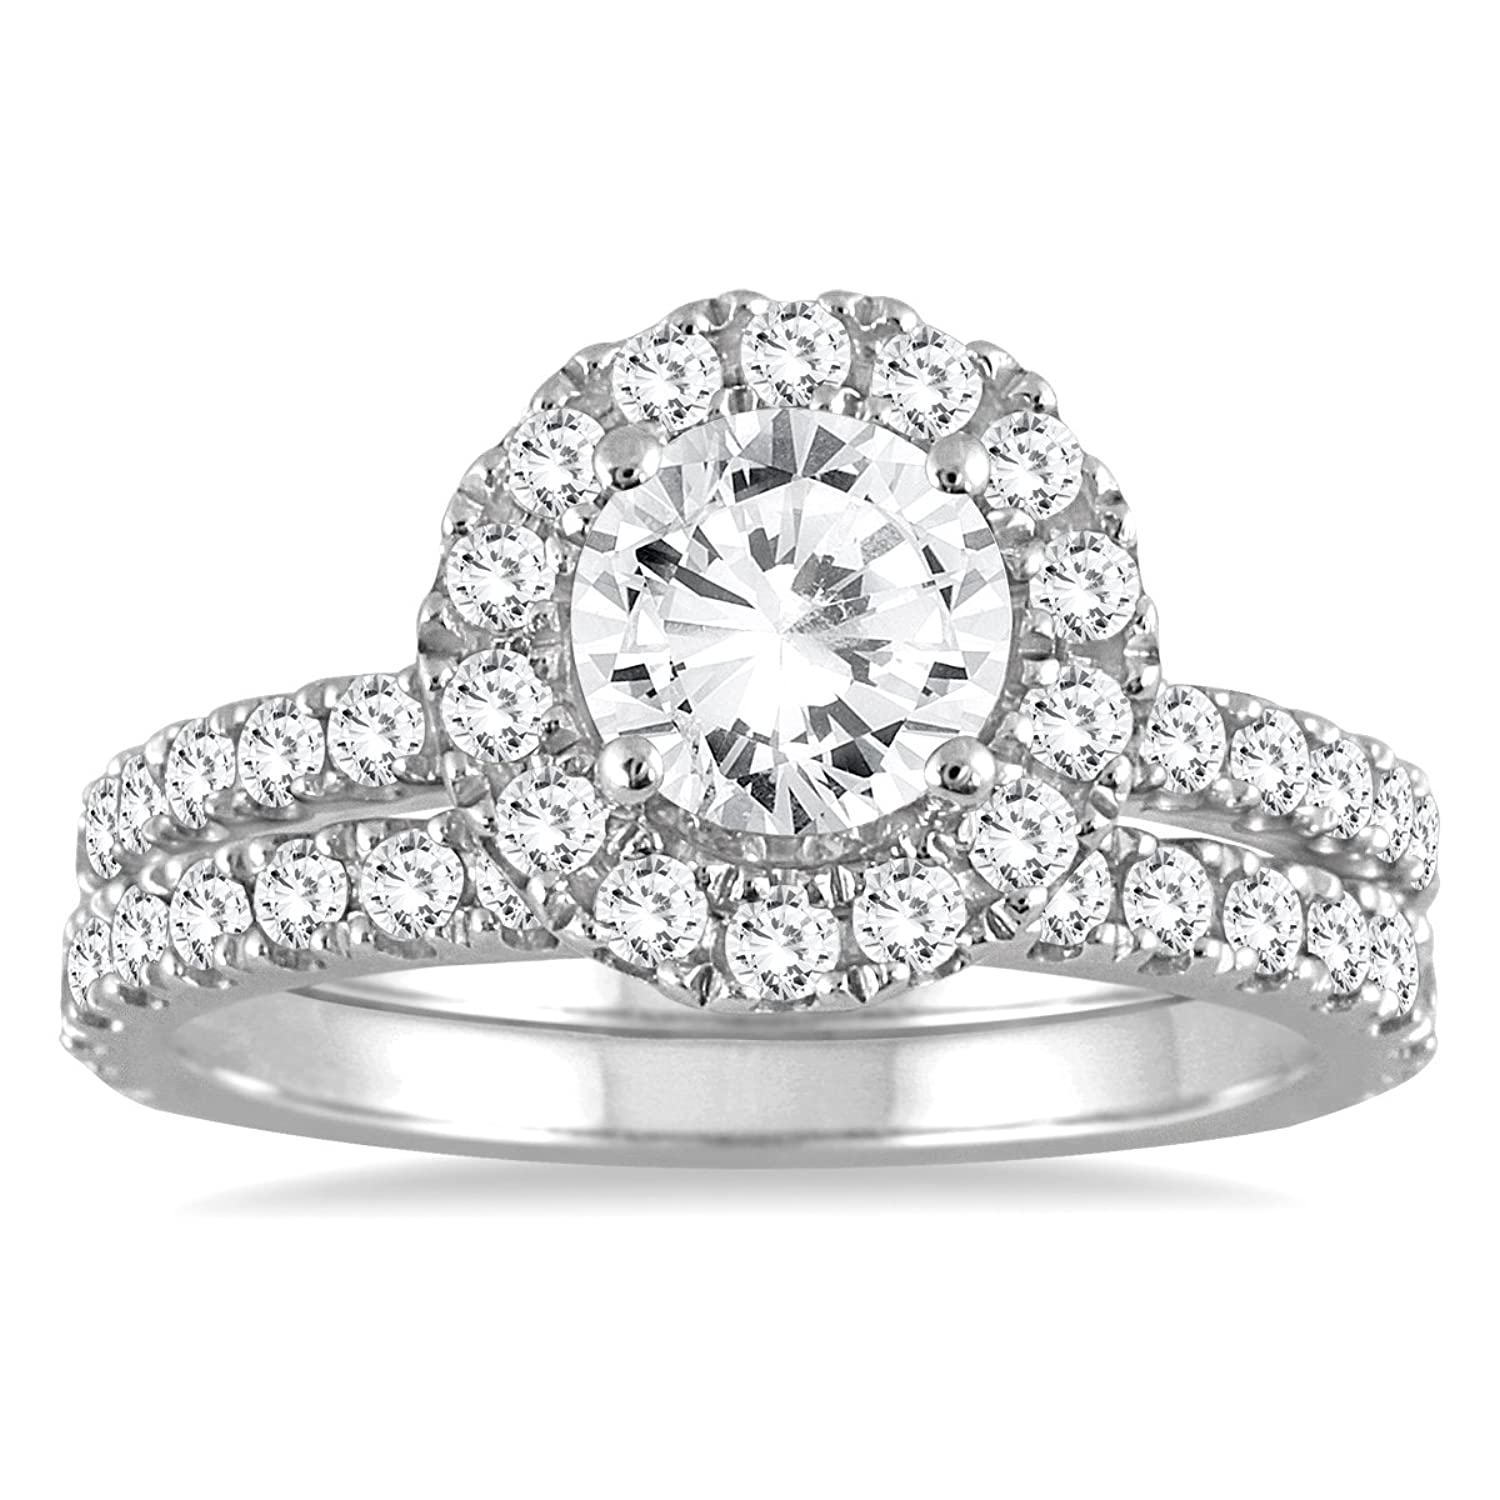 2 Carat Diamond Halo Bridal Set in 14K White Gold